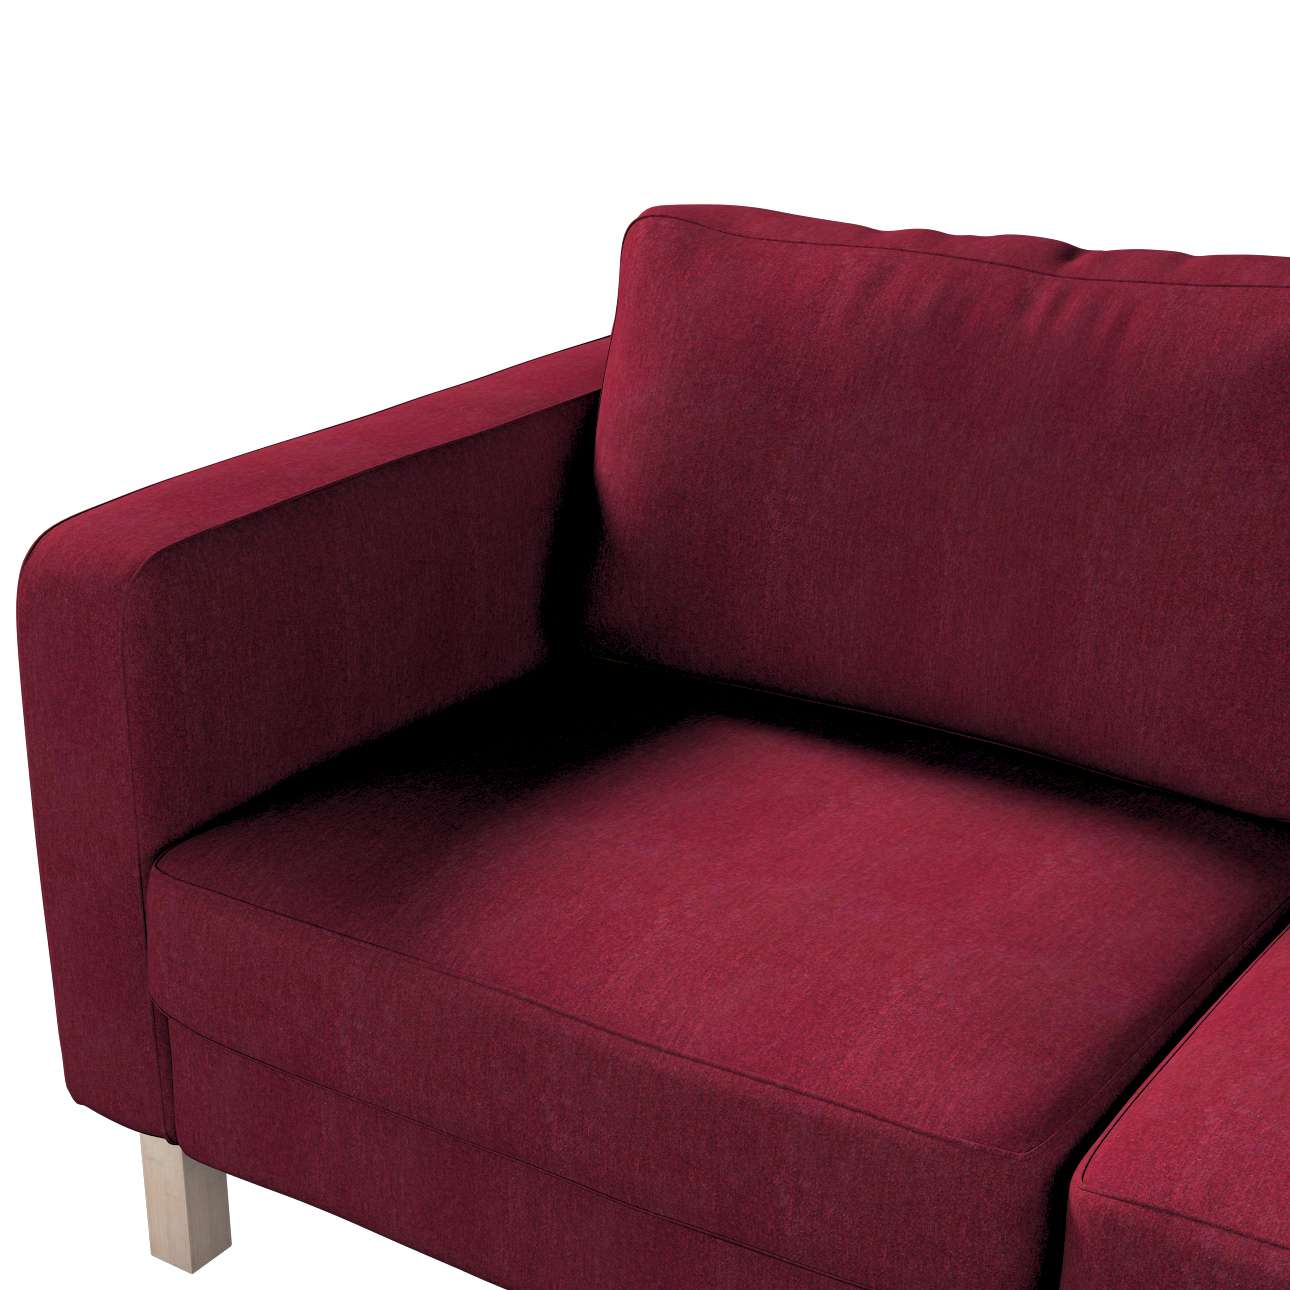 Karlstad 2-seater sofa cover in collection Chenille, fabric: 702-19